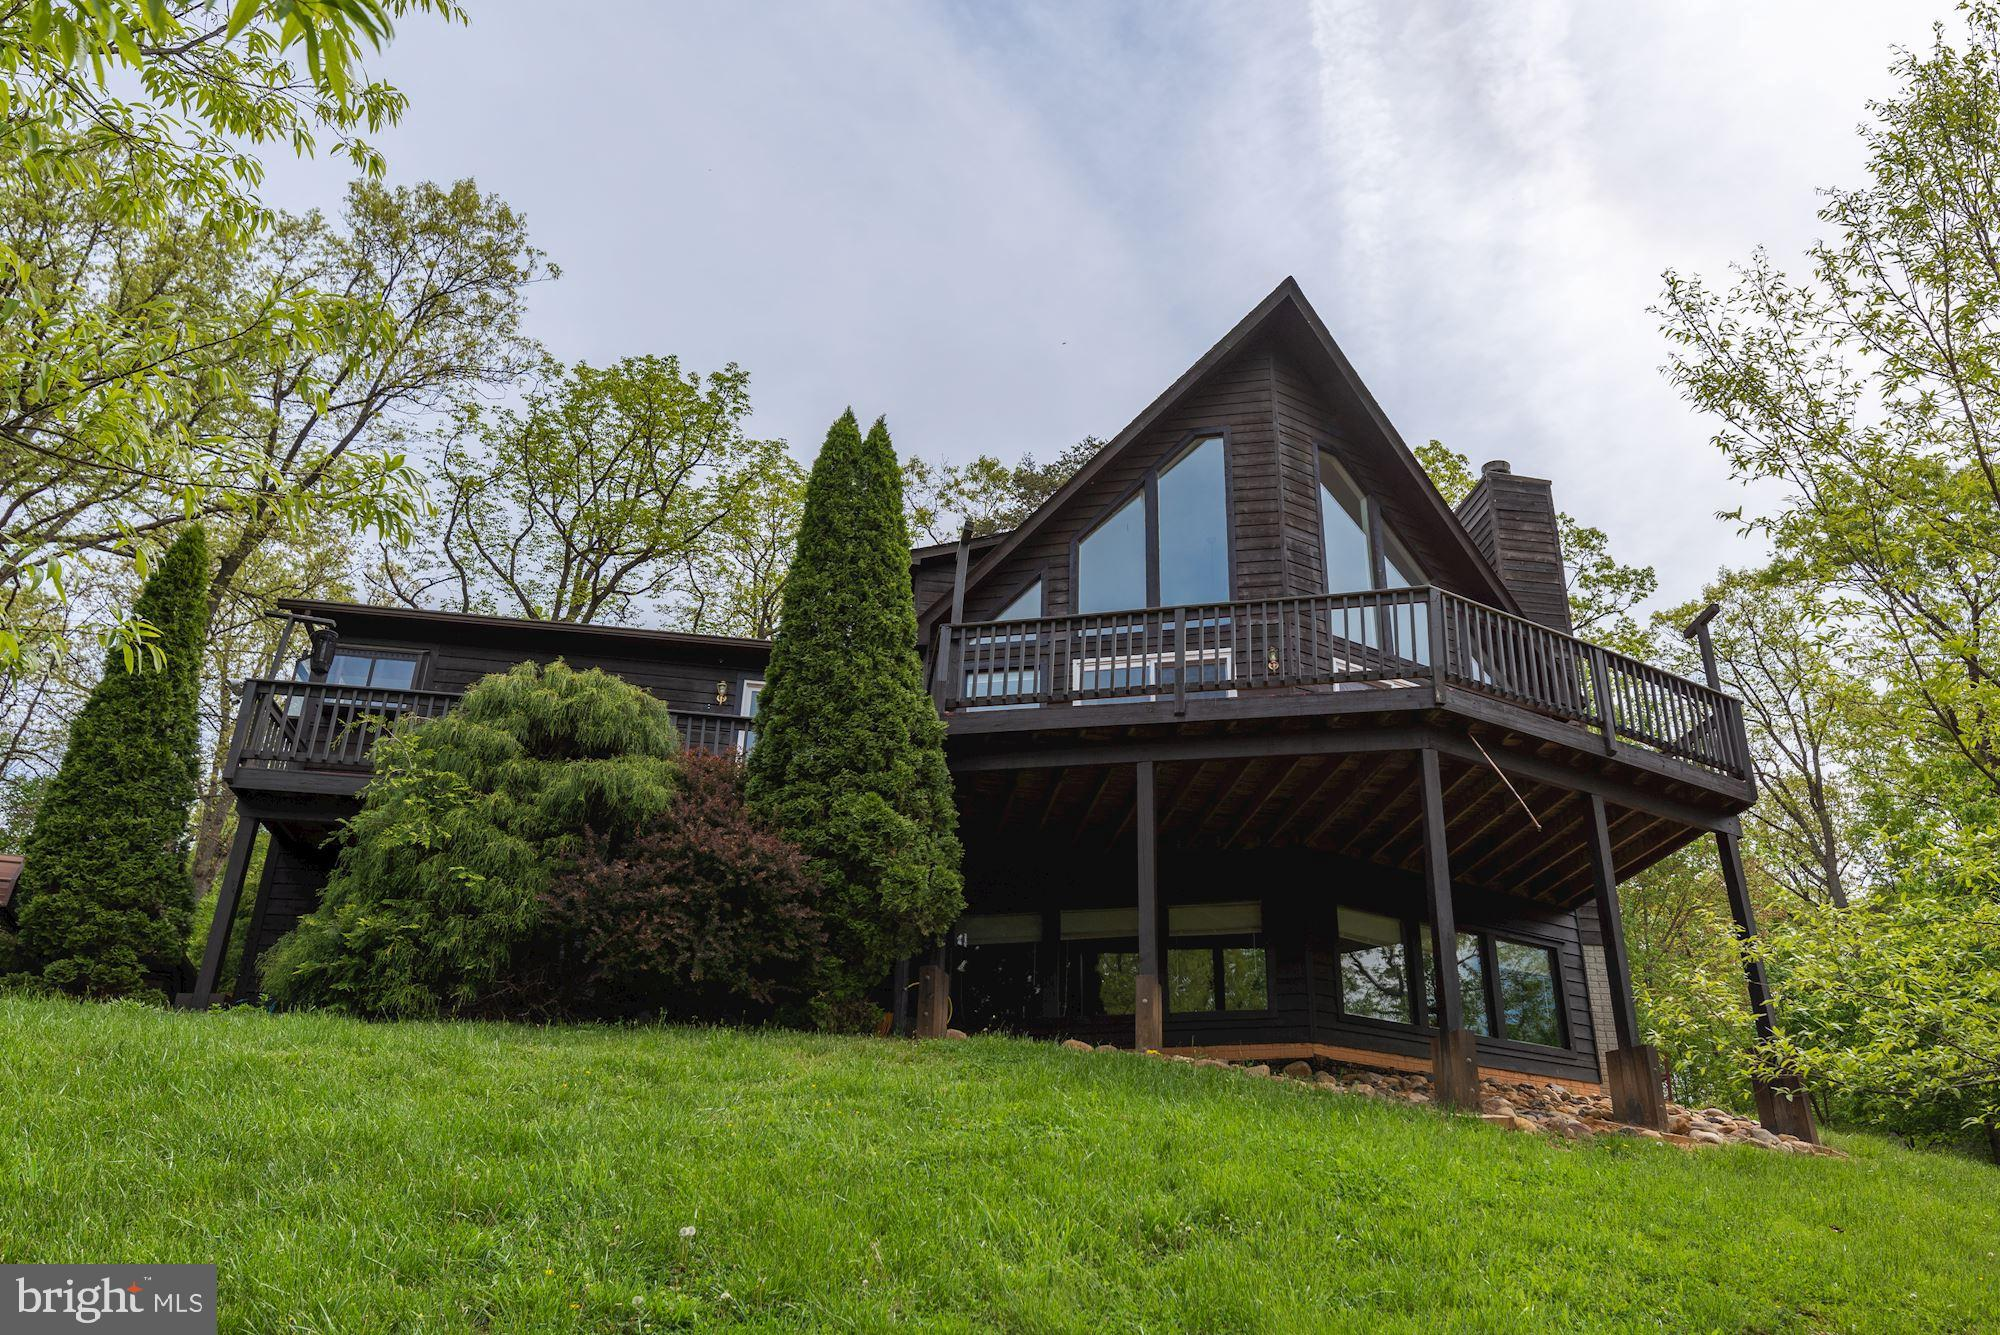 781 RIVER VIEW ROAD, RILEYVILLE, VA 22650